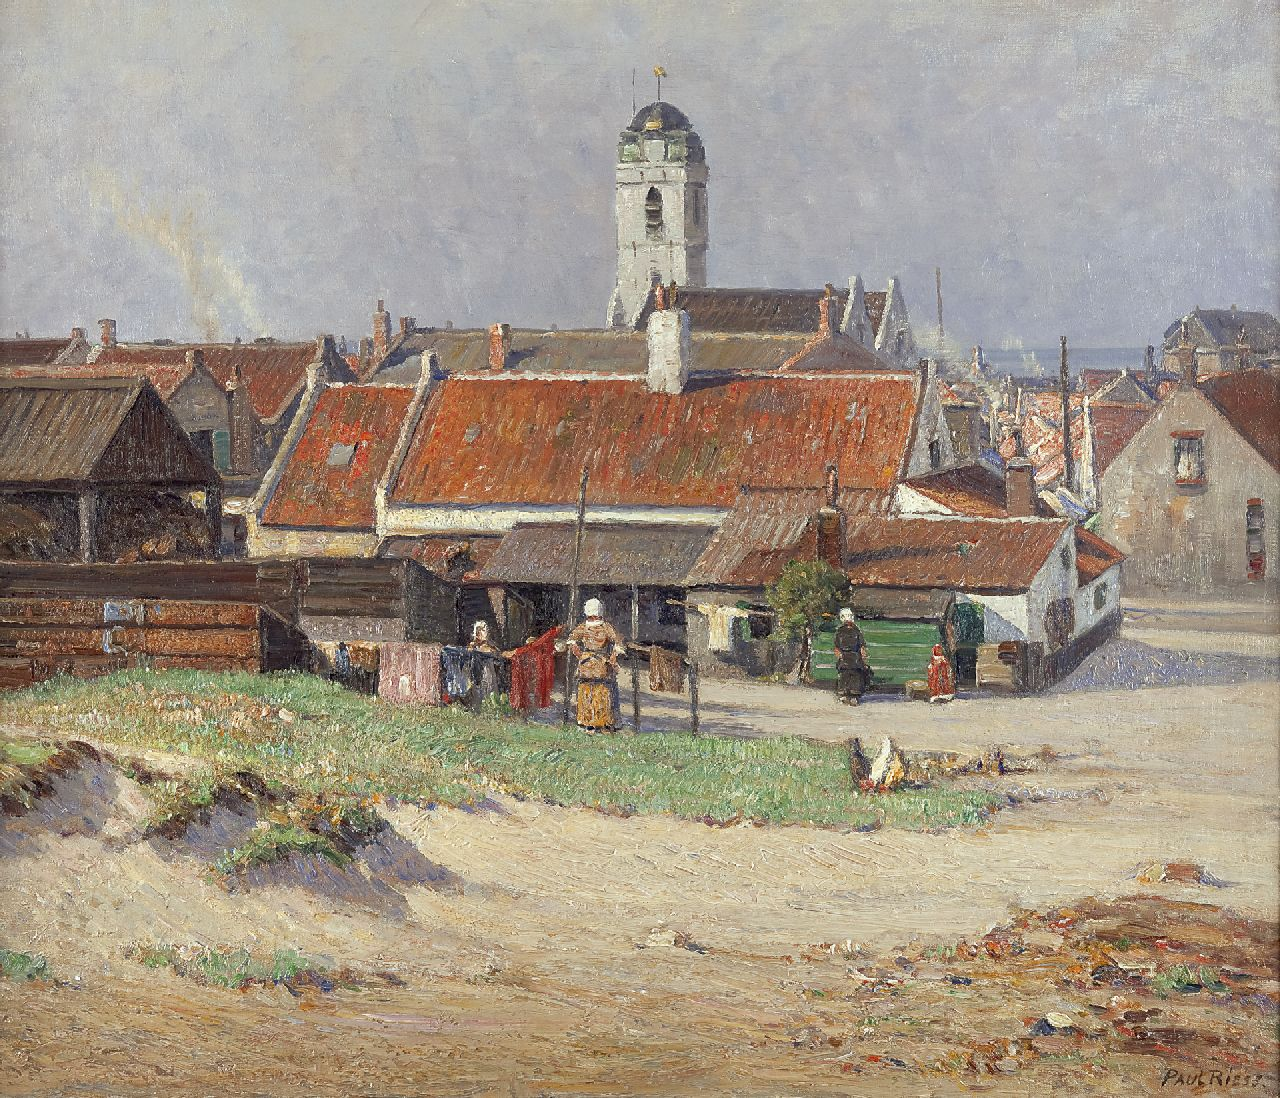 Paul Riess | A View of Katwijk aan Zee with the Oude Kerk, oil on canvas, 60.9 x 70.6 cm, signed l.r.